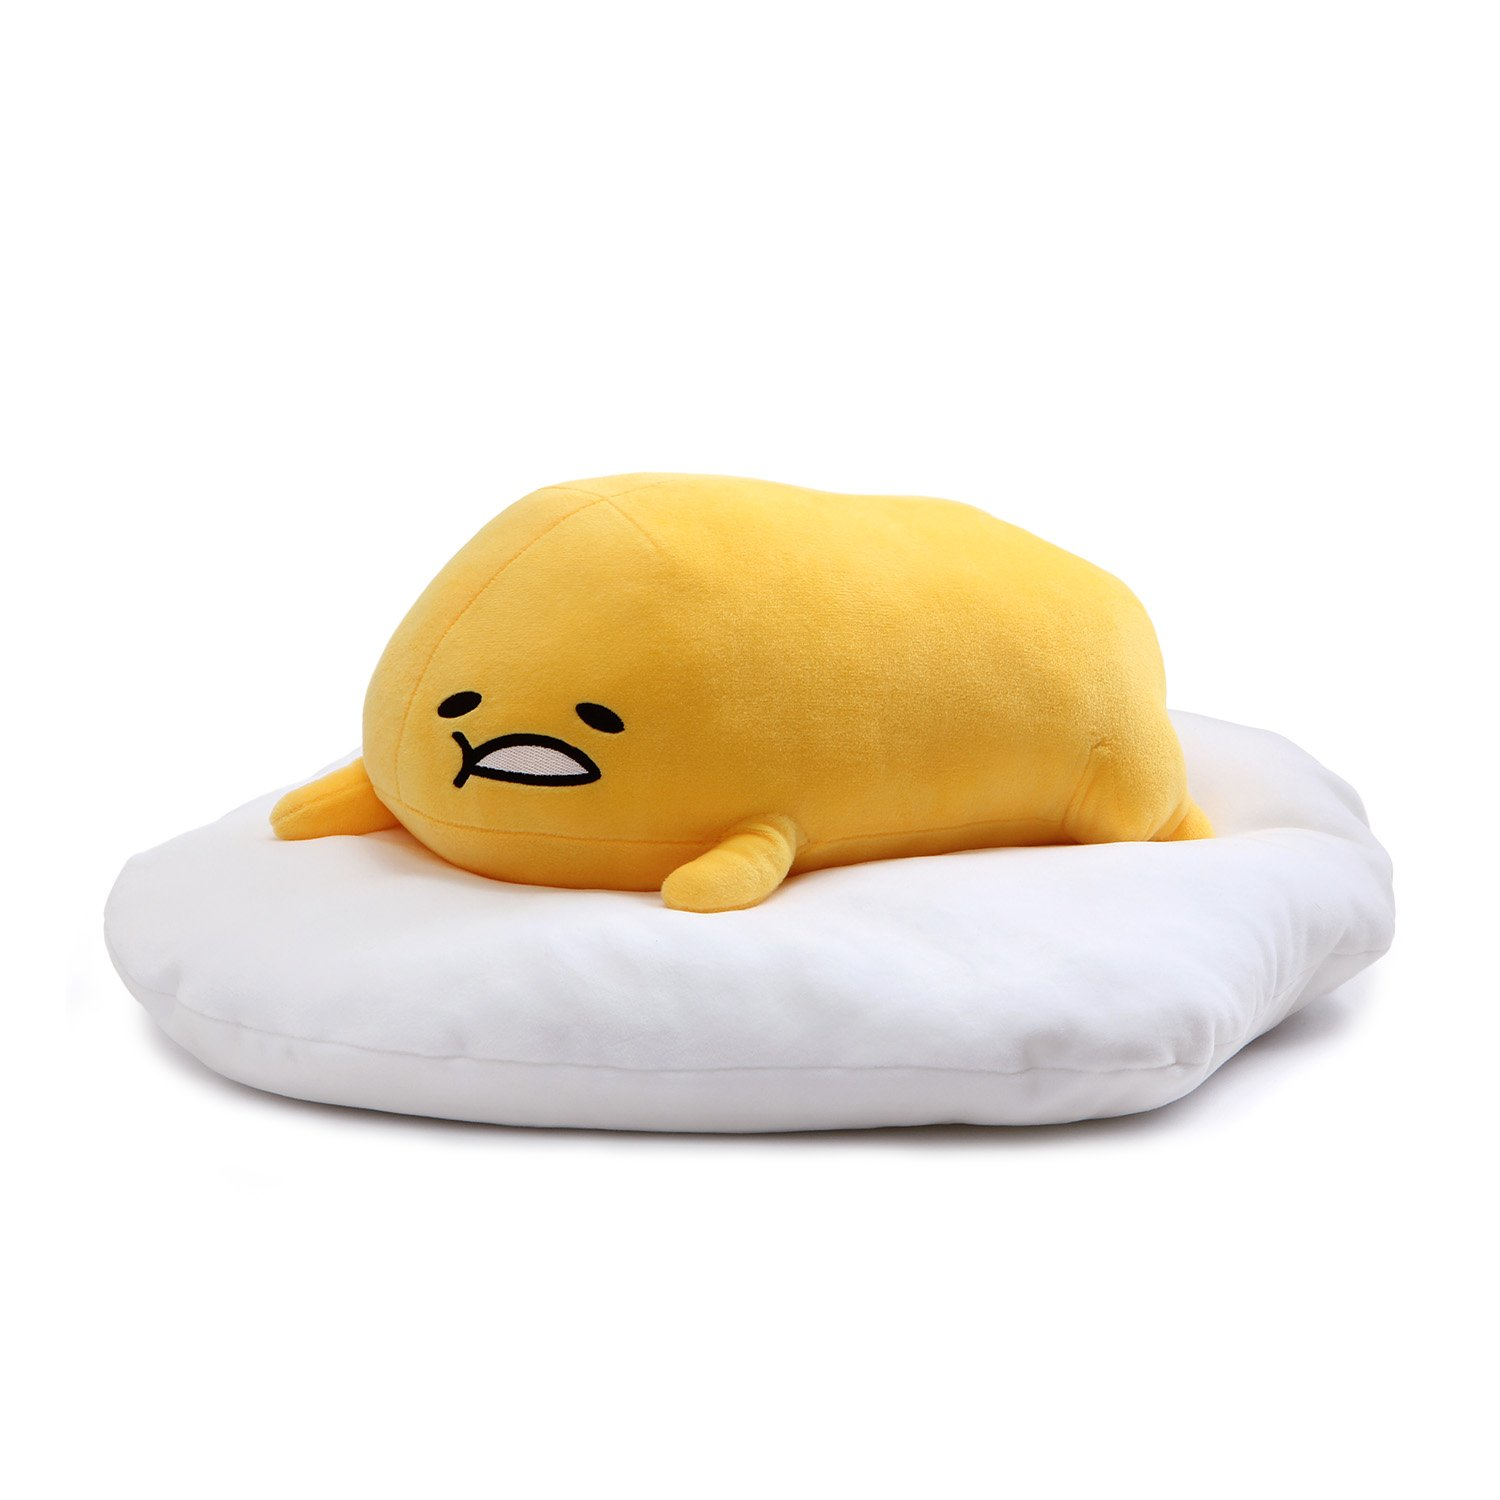 "GUND Gudetama ""Lazy Laying Down Pose"" Stuffed Animal Plush, 17 17 4060709 Accessory Consumer Accessories"